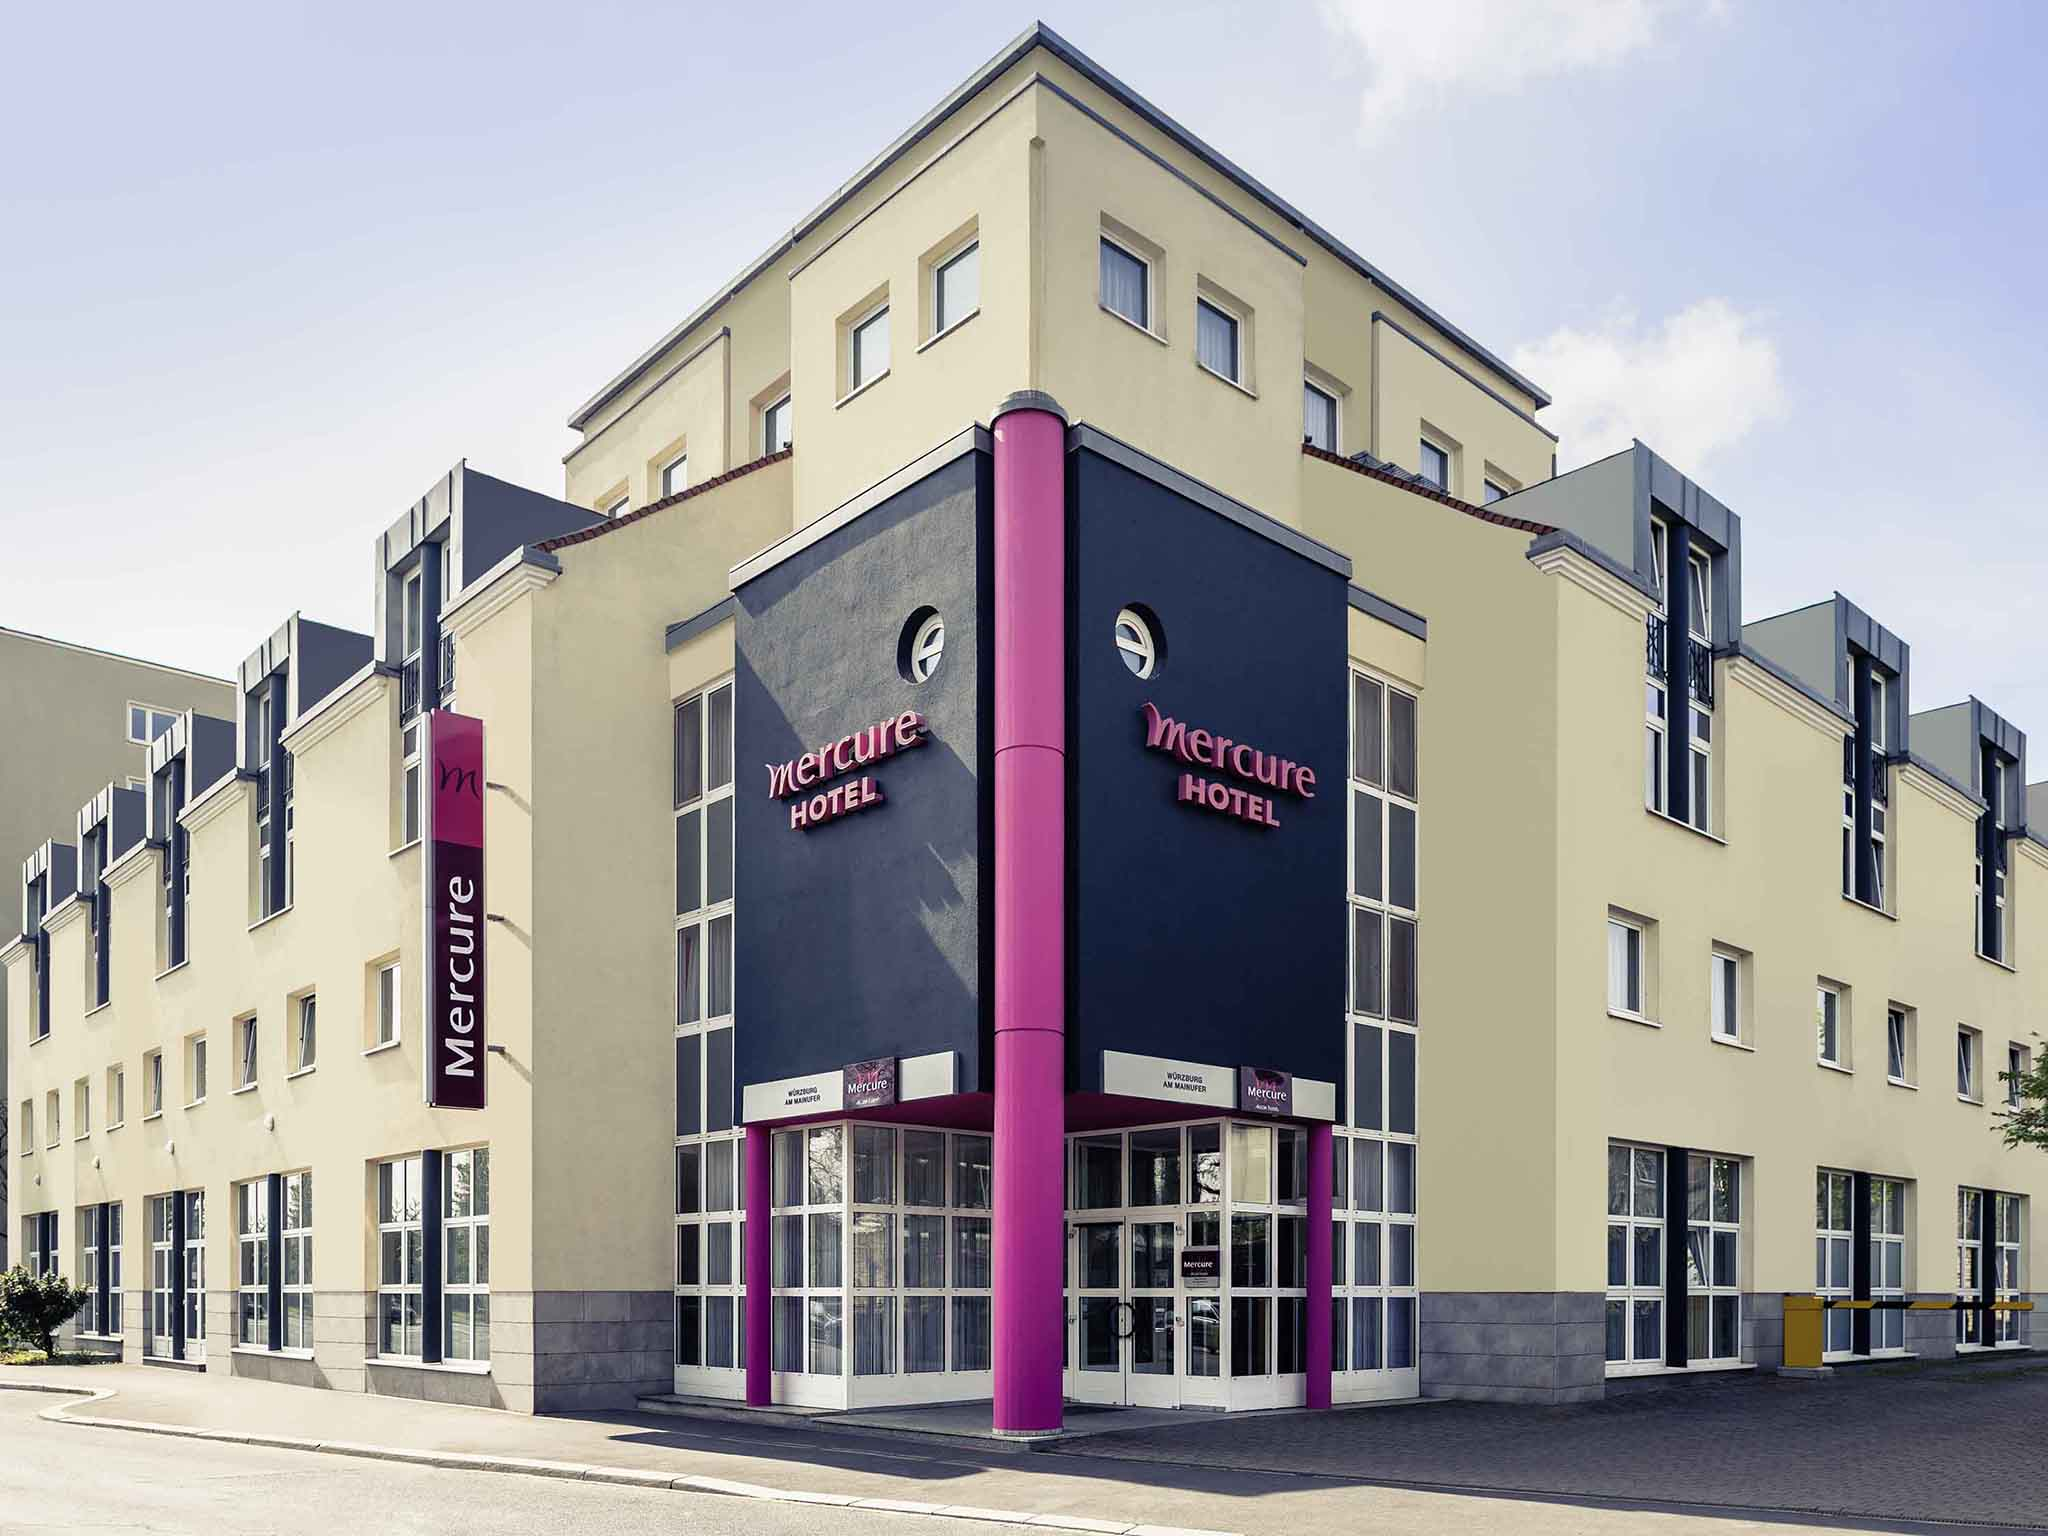 Hotell – Mercure Hotel Wuerzburg am Mainufer